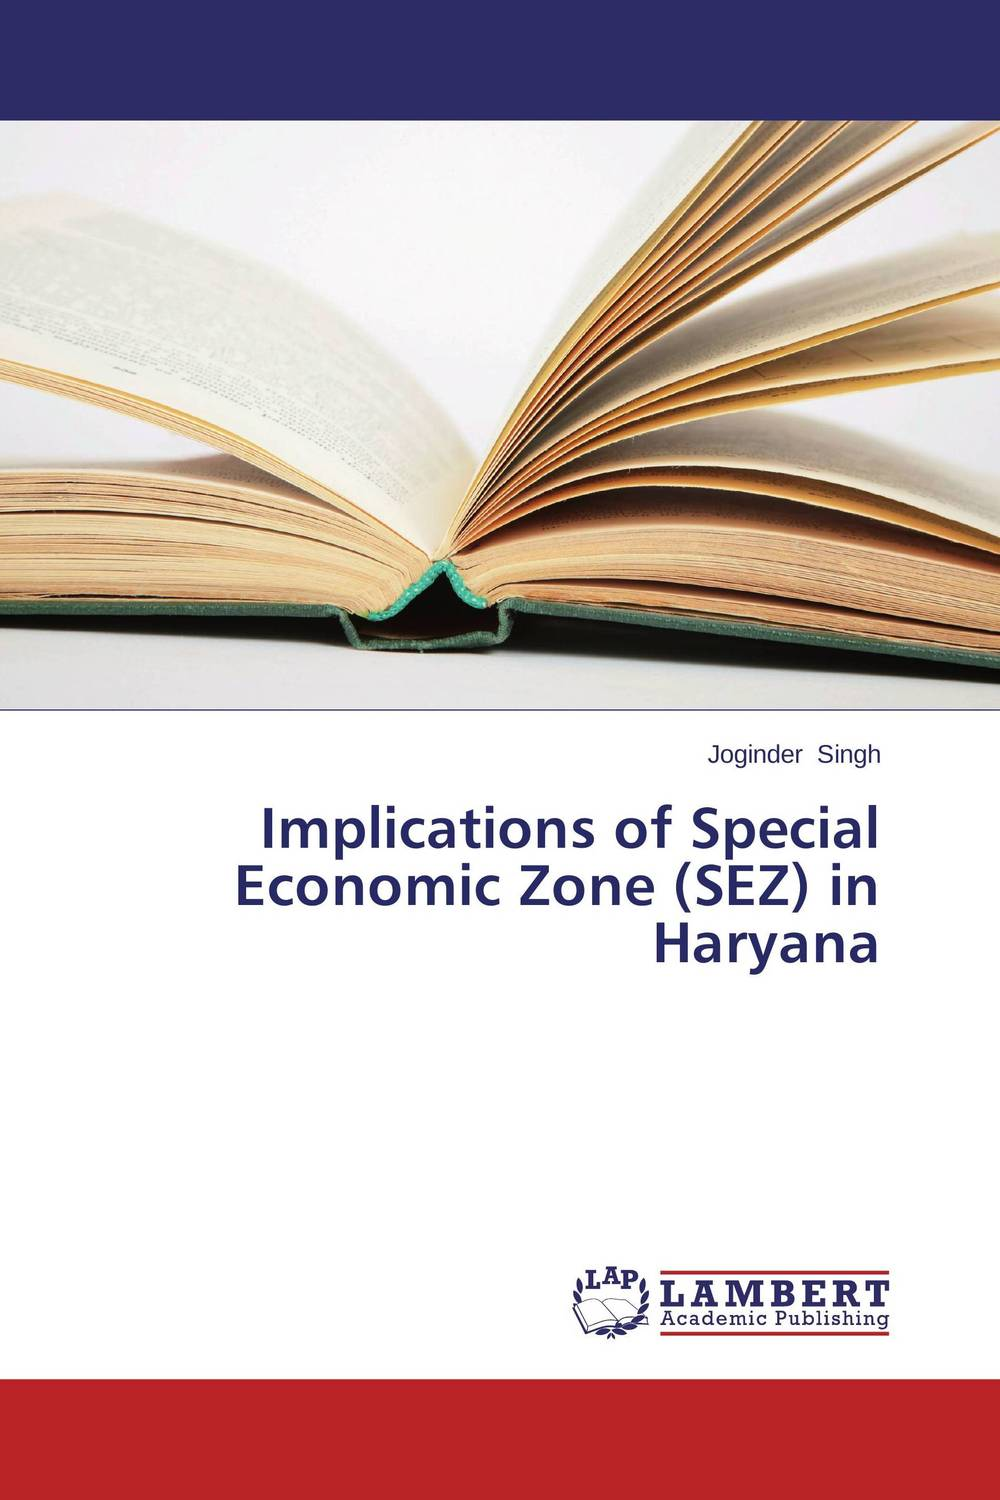 Implications of Special Economic Zone (SEZ) in Haryana